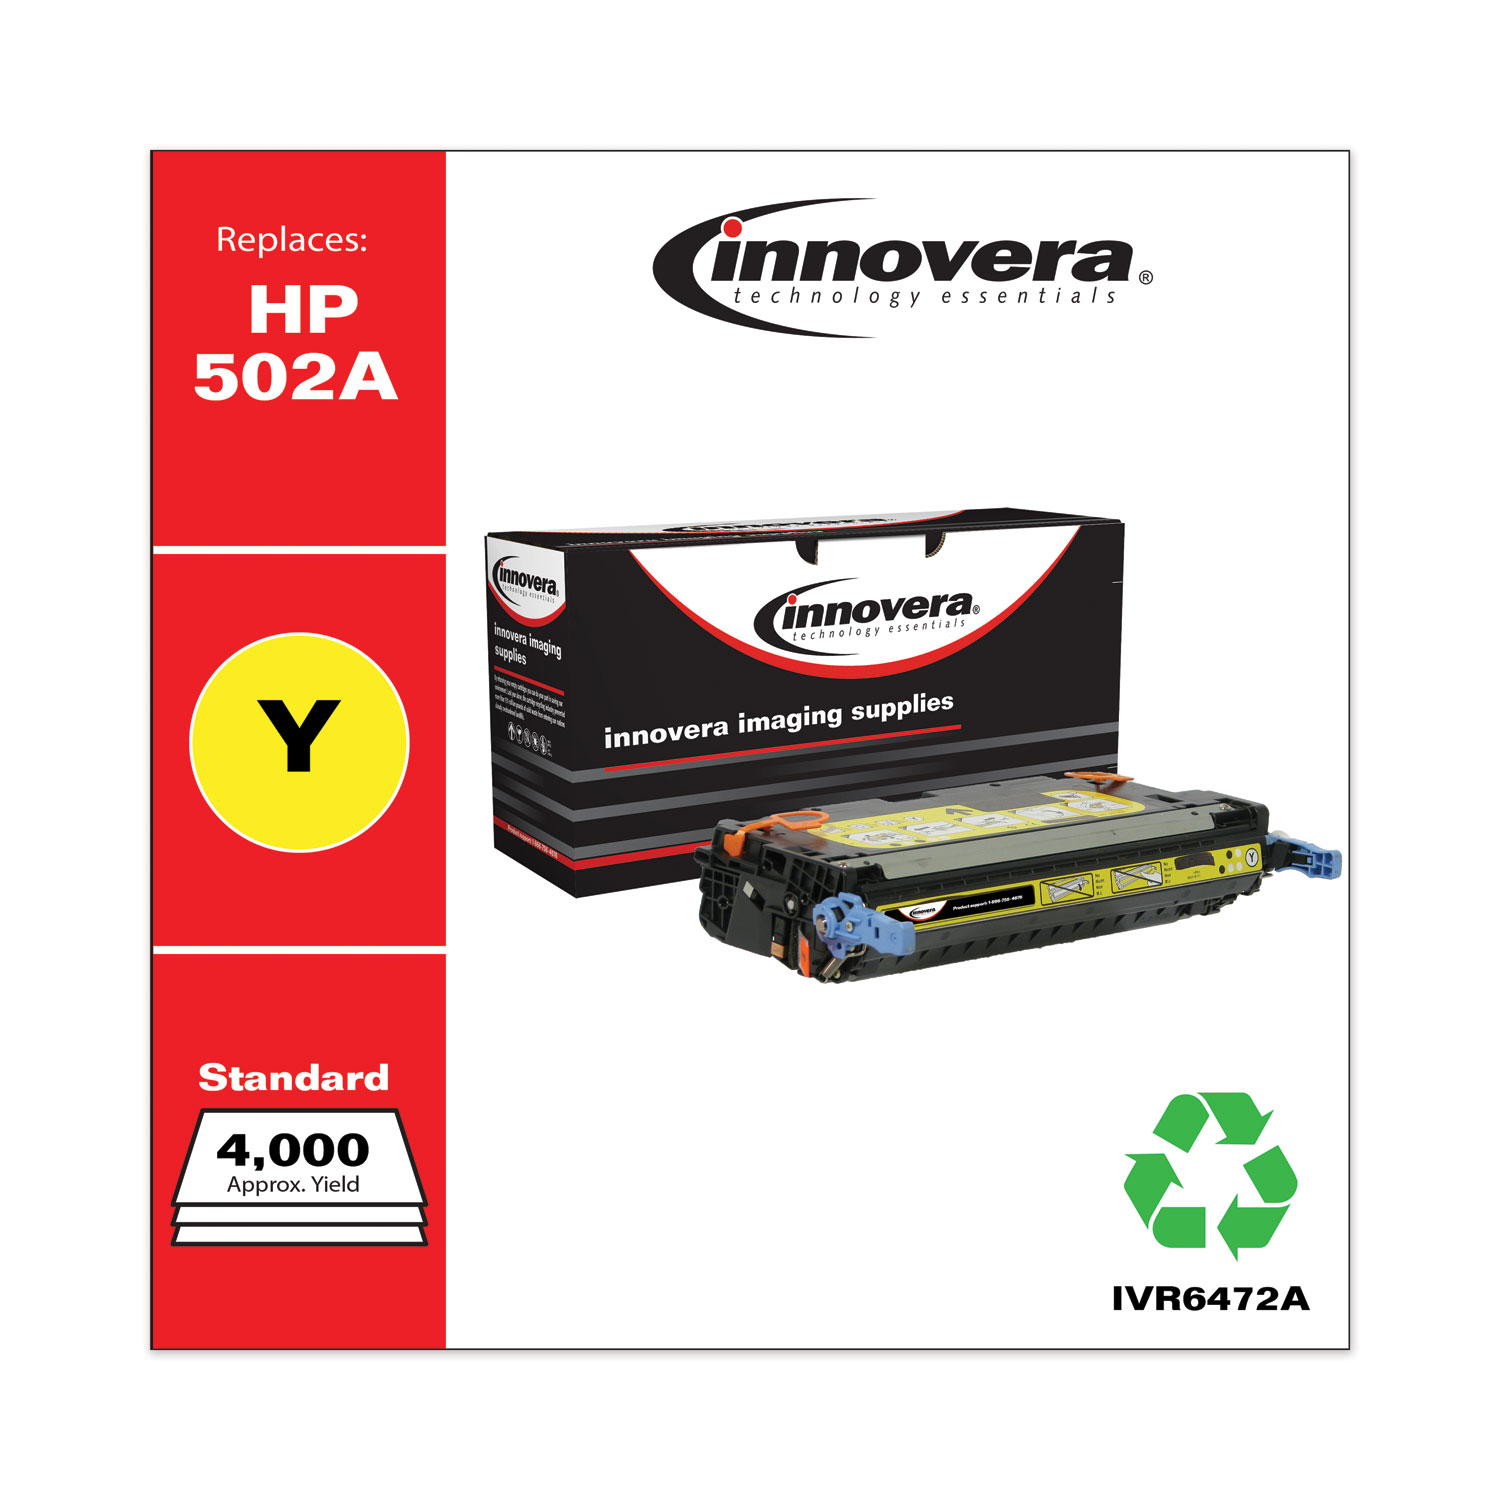 Remanufactured Yellow Toner, Replacement for HP 502A (Q6472A), 4,000 Page-Yield IVR6472A